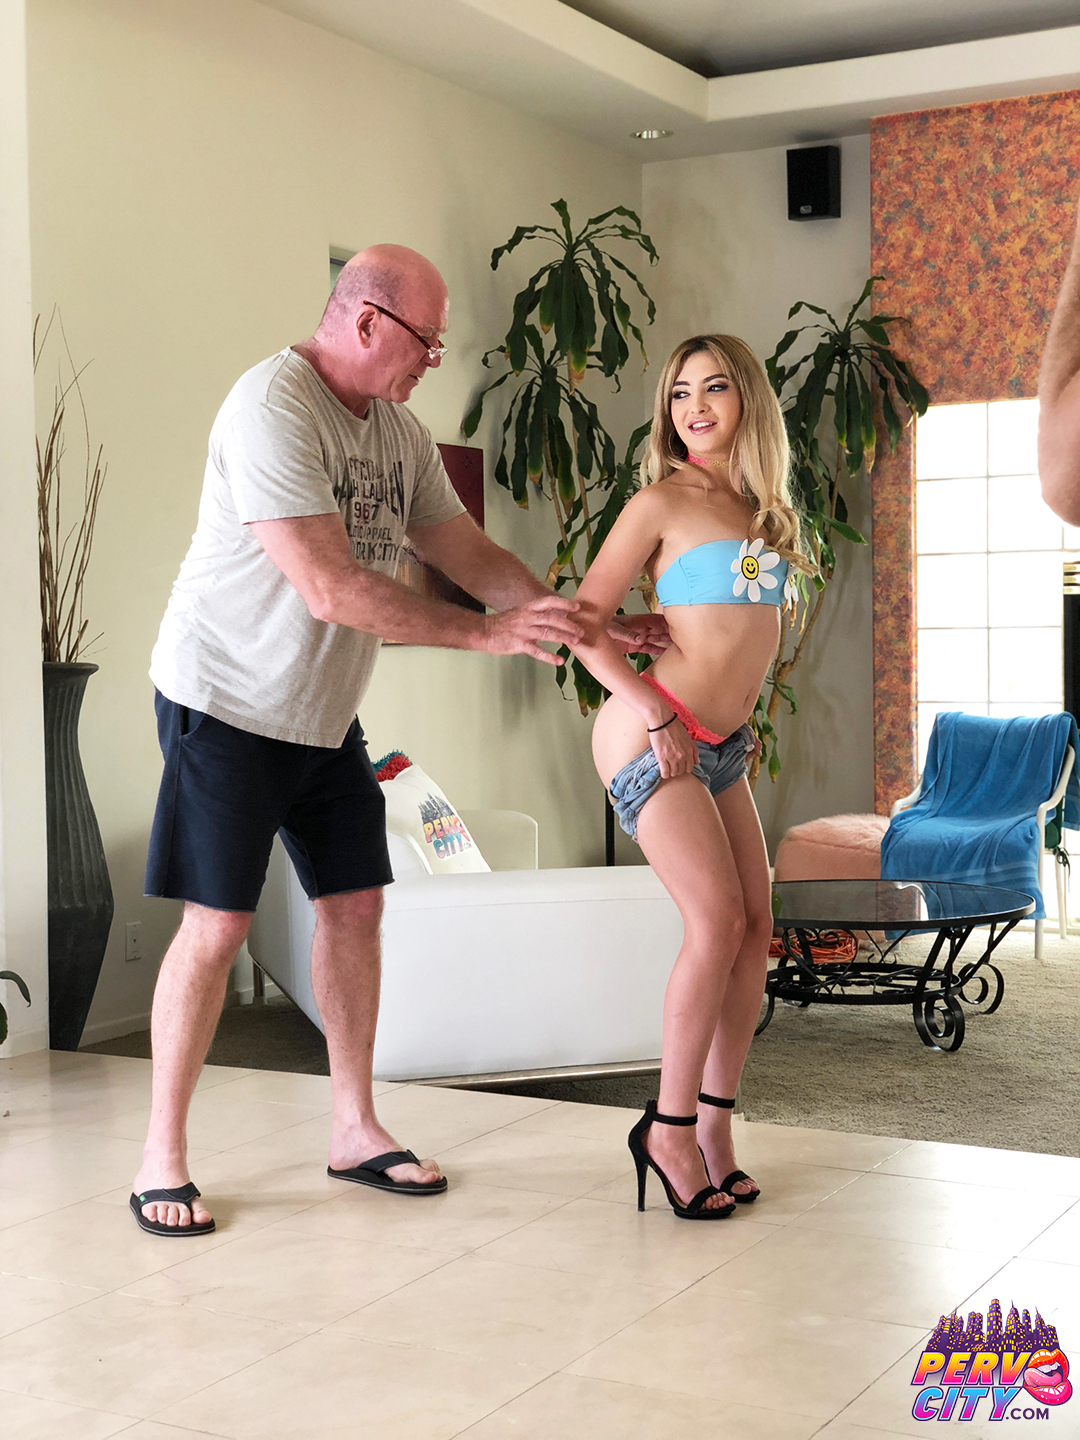 Behind the Scenes with Jane Wilde